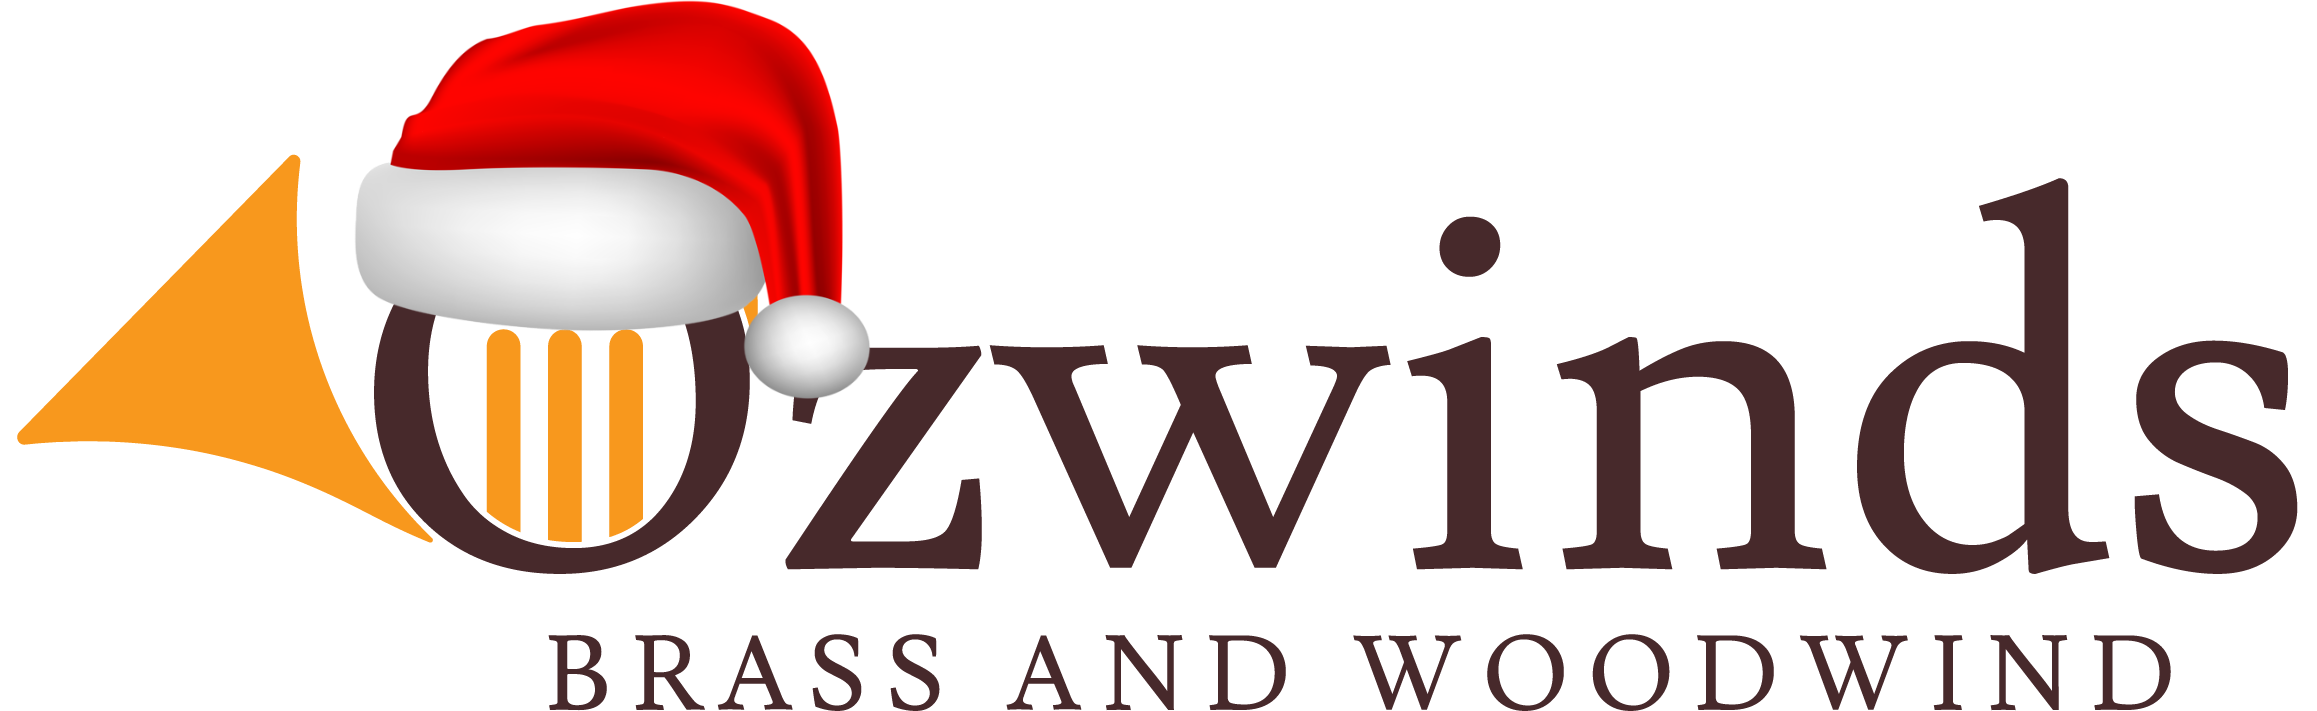 Ozwinds for Musical Instruments and Accessories